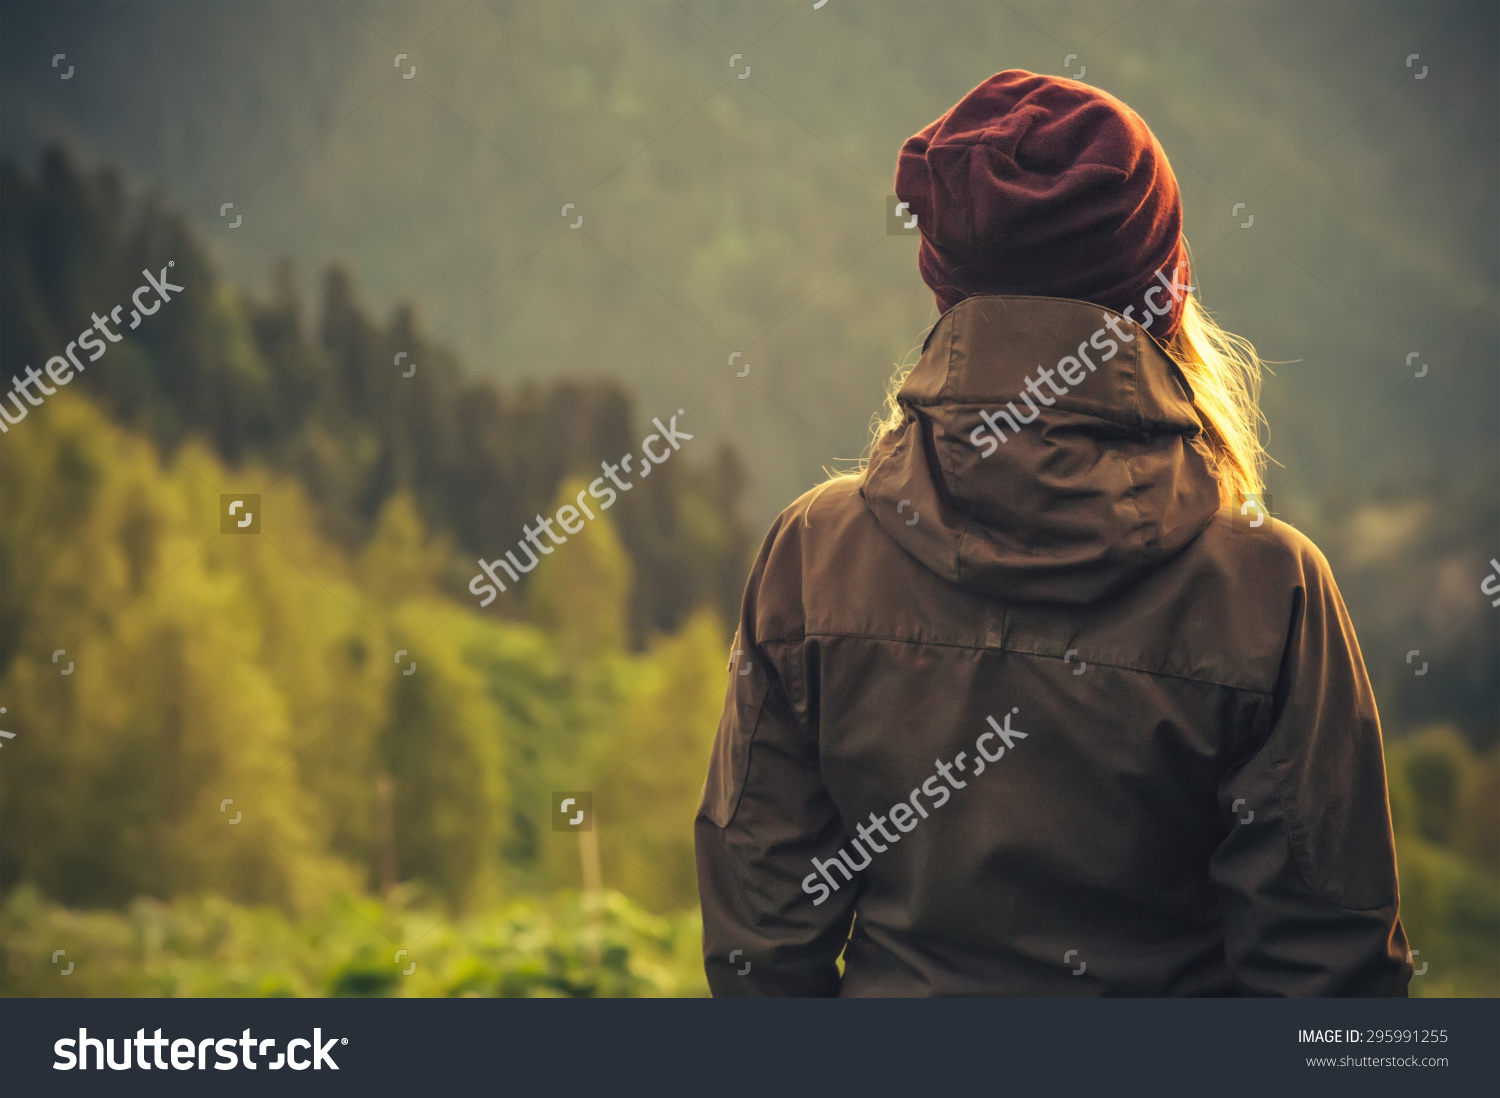 stock-photo-young-woman-standing-alone-outdoor-with-wild-forest-mountains-on-background-travel-lifestyle-and-295991255